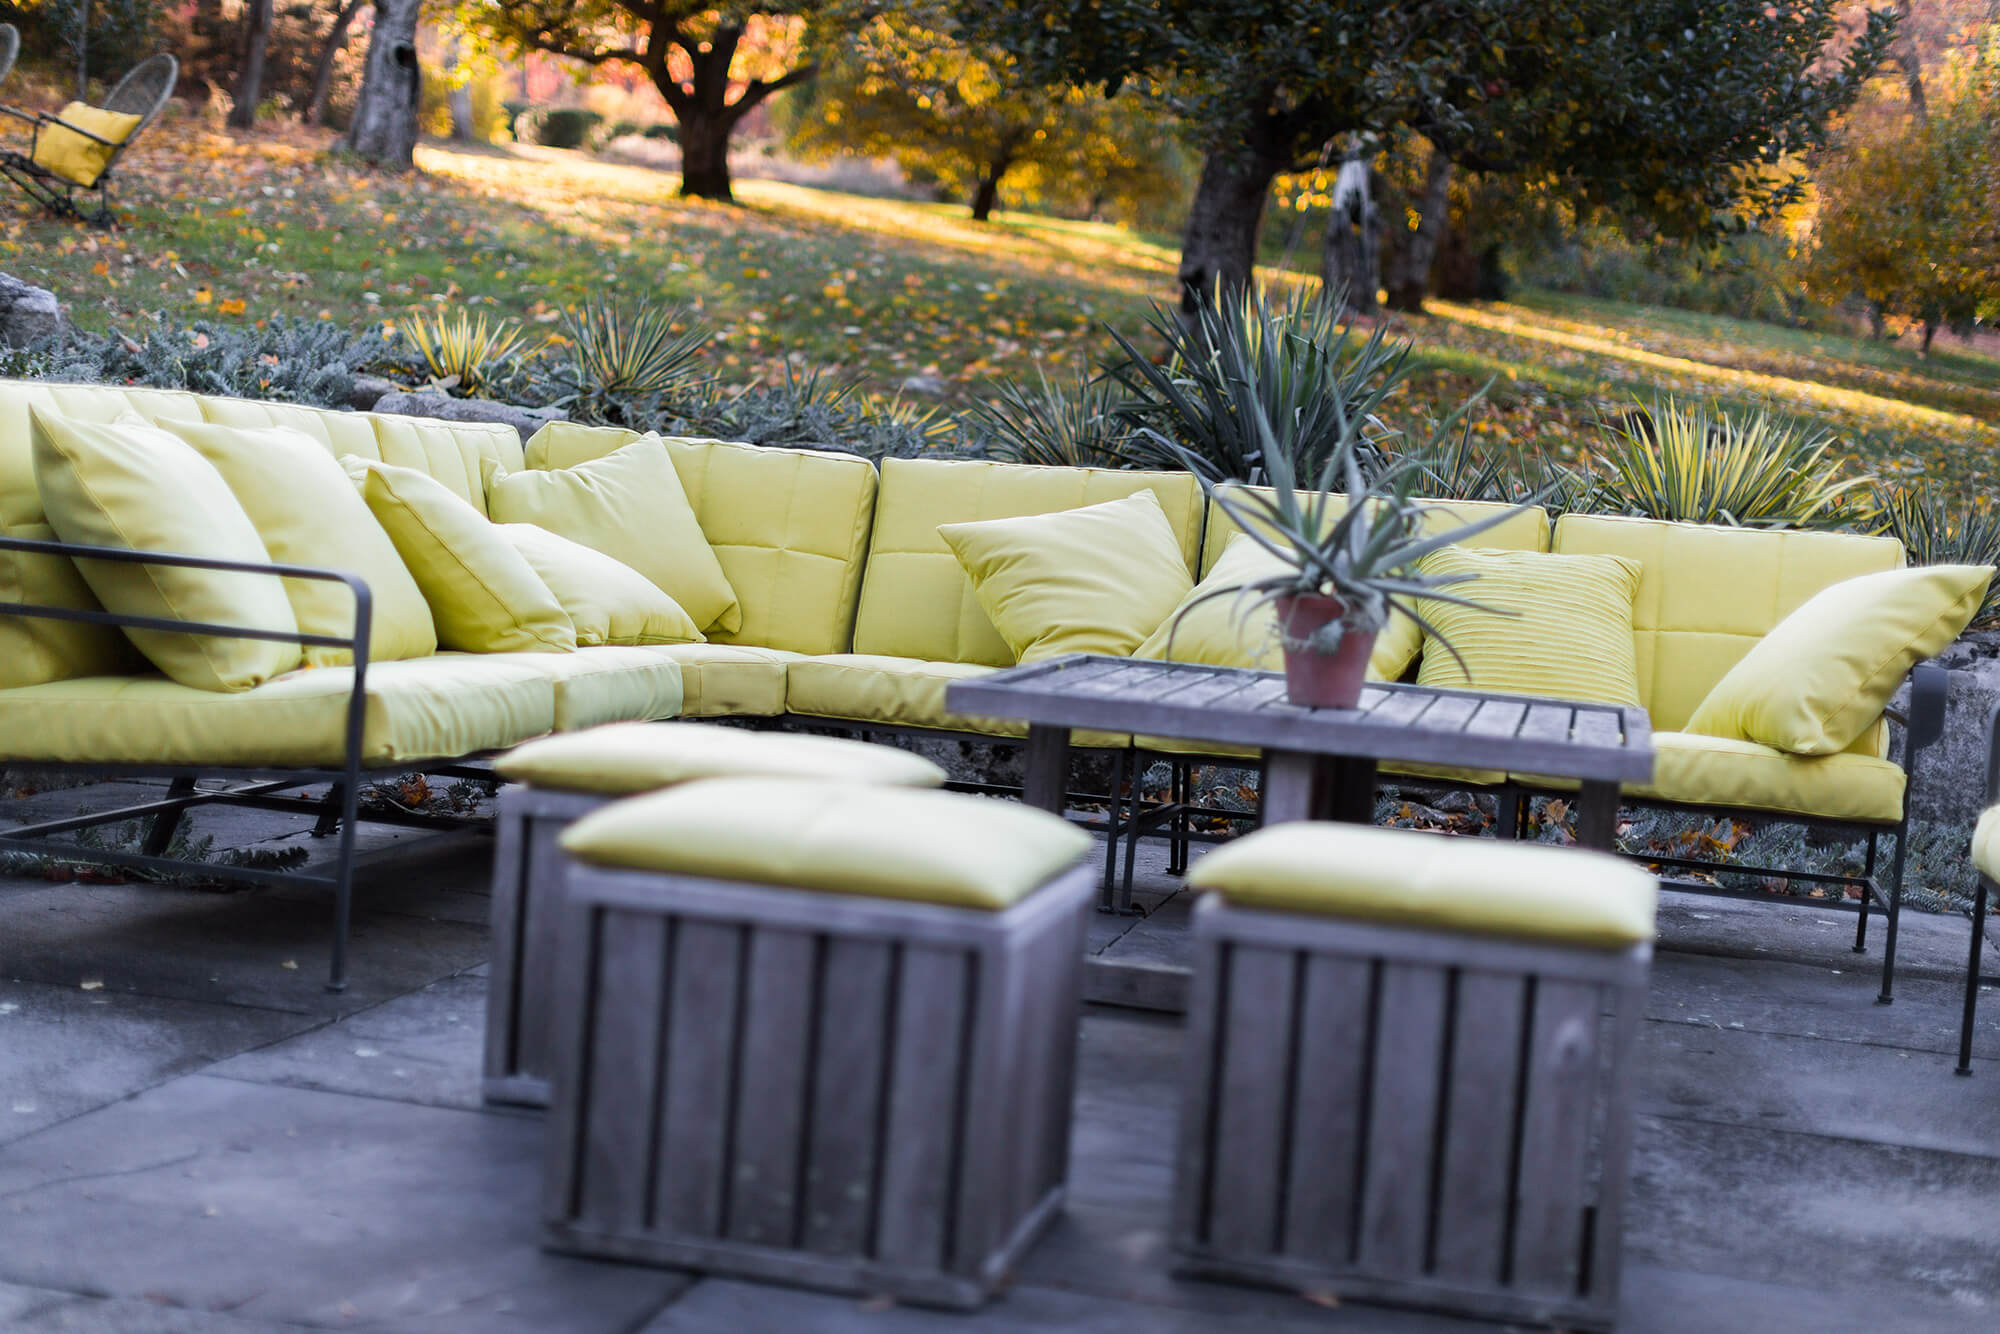 sofa on outdoor patio featuring cushions with green sunbrella fabric - Garden Furniture Lebanon